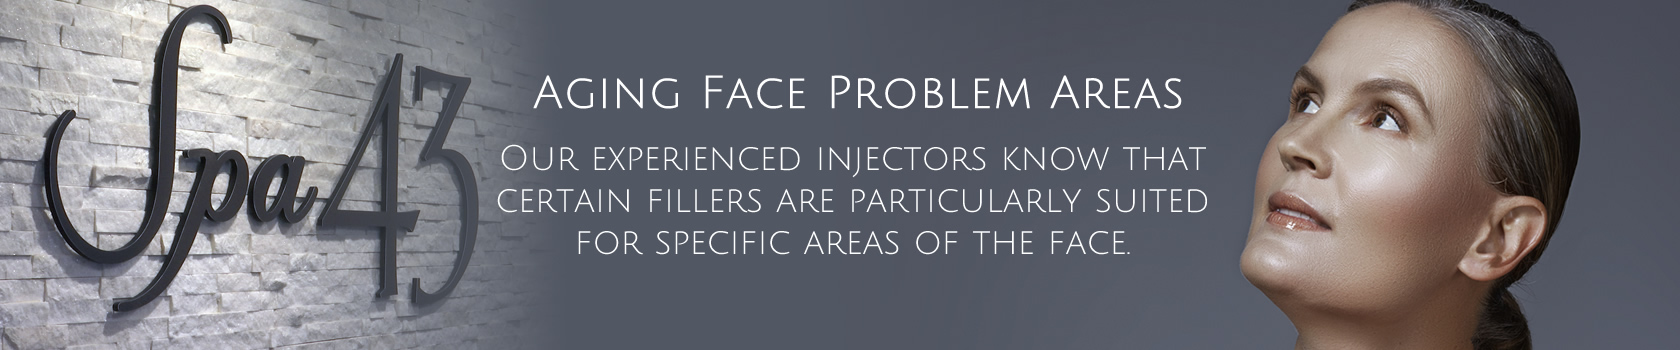 Aging Face Problems Areas